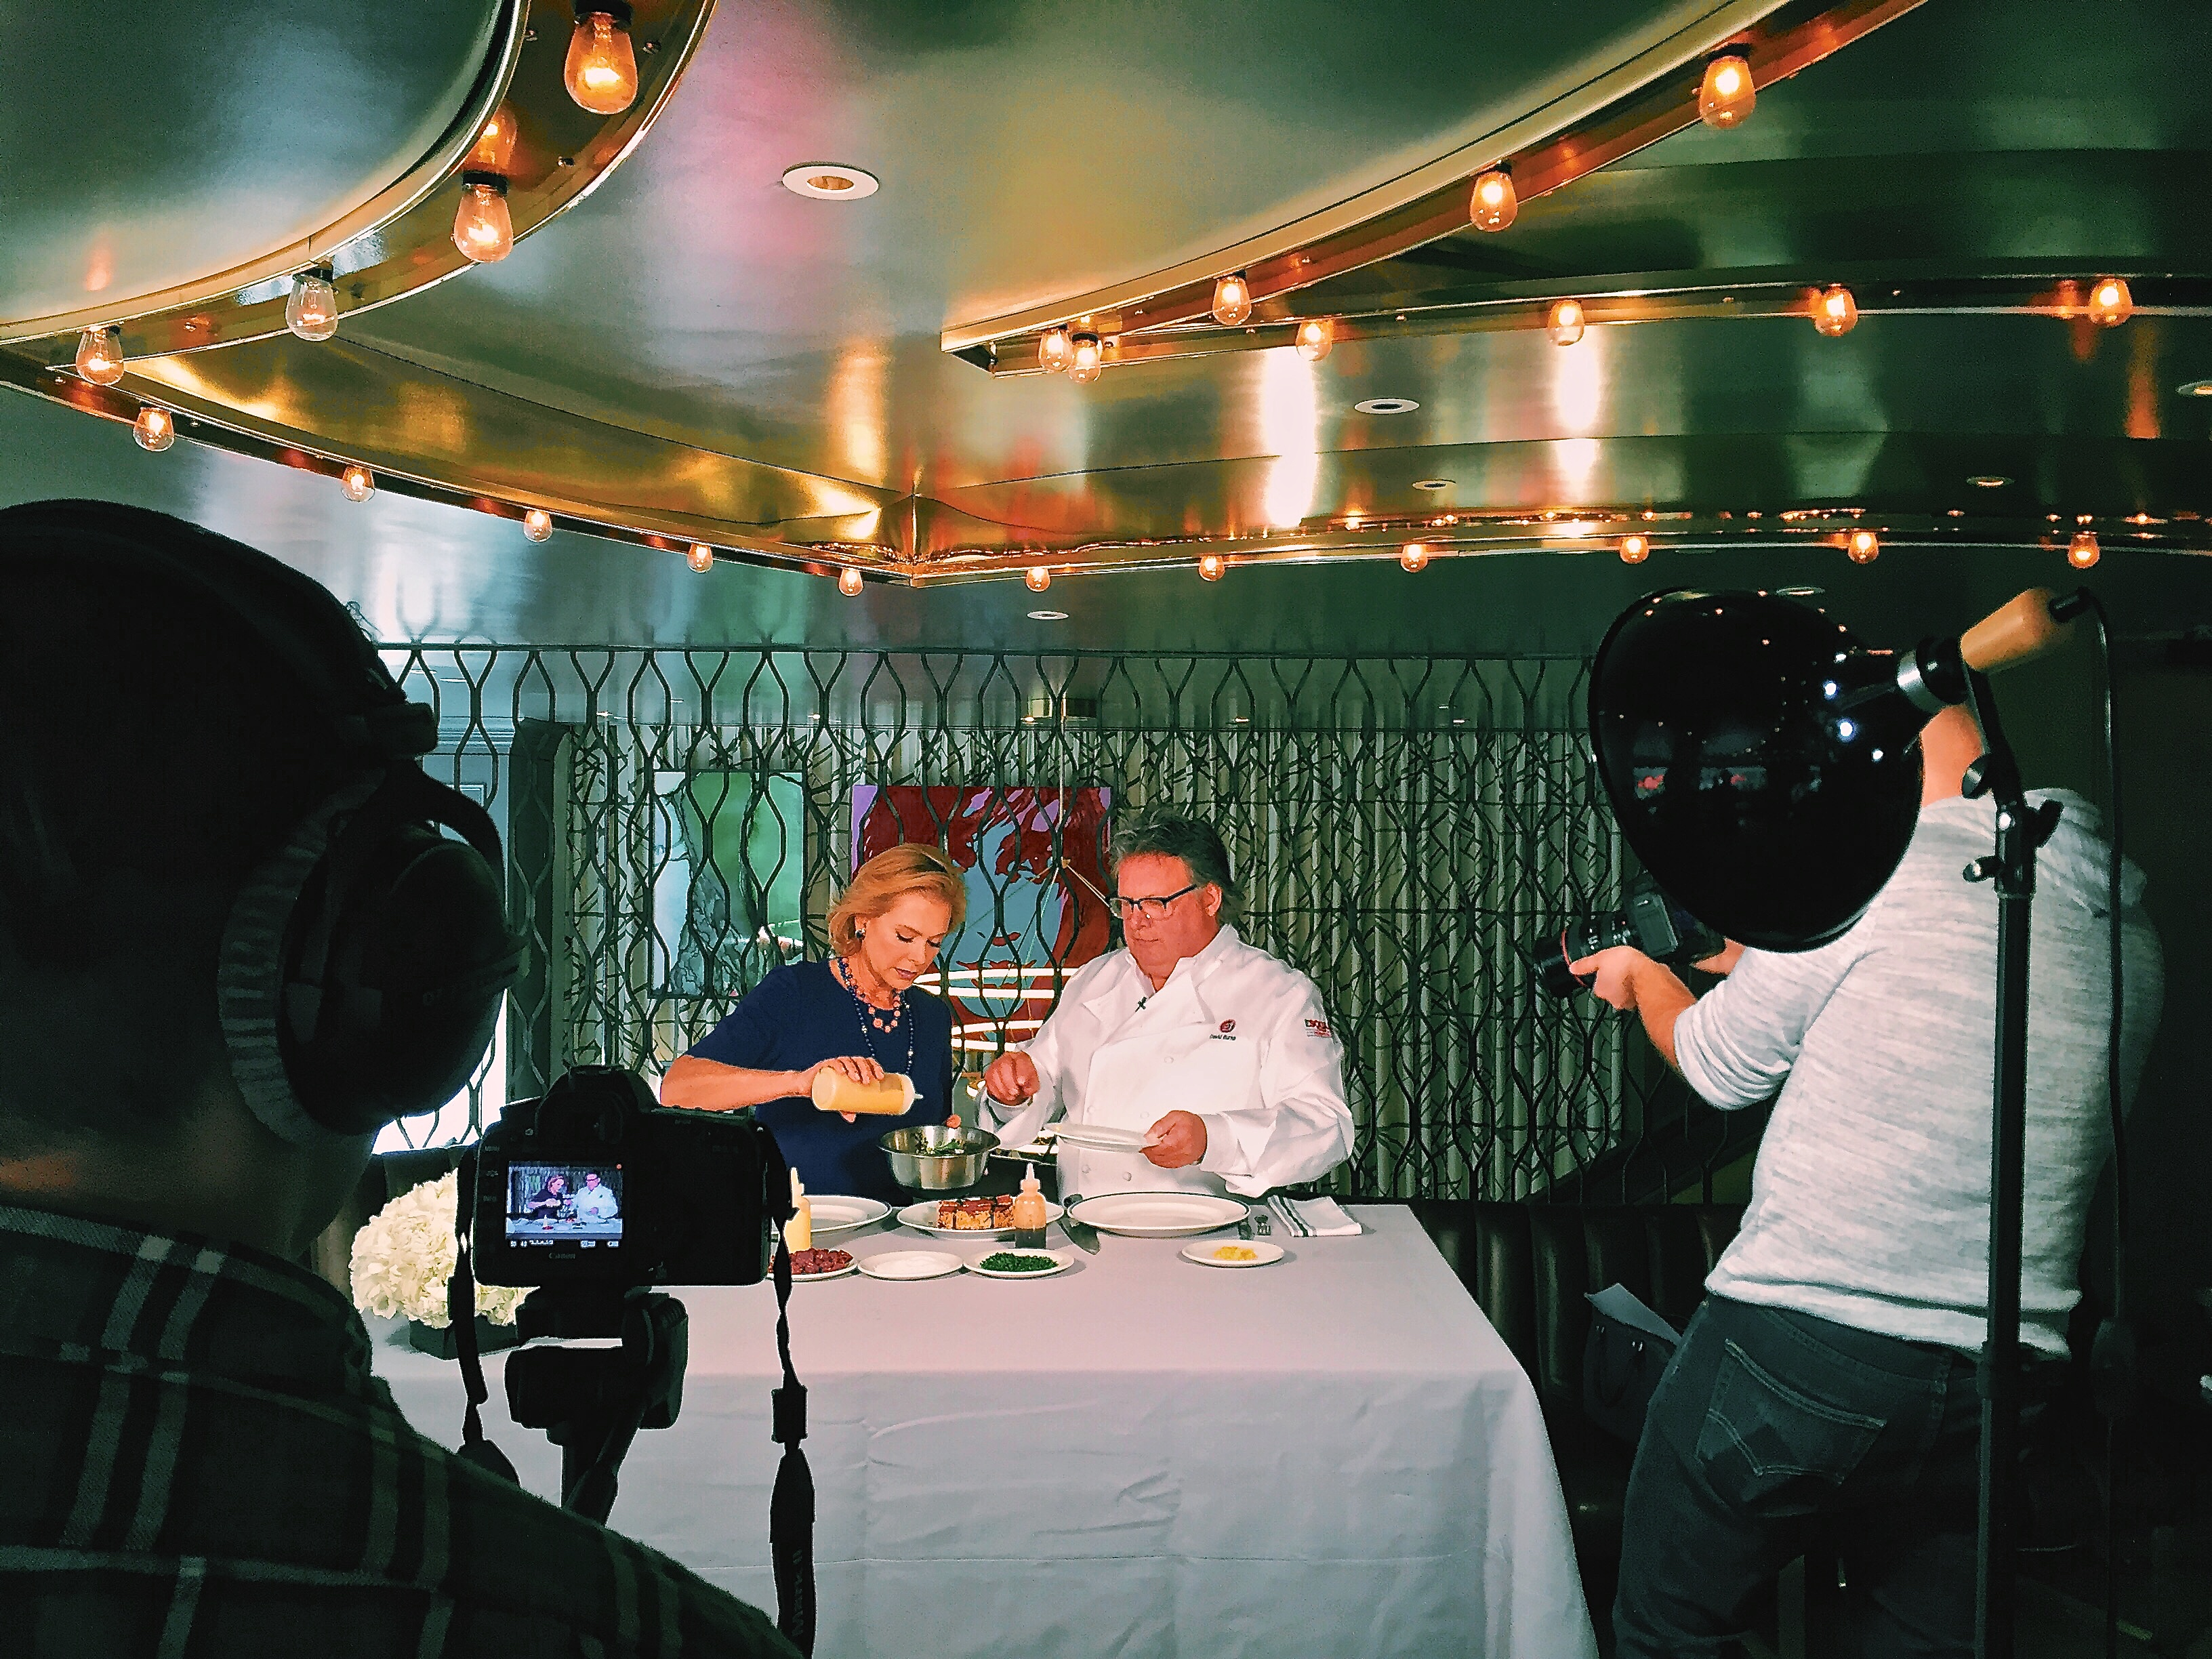 Behind the Scene shot of Pamela and Chef David Burke Cooking